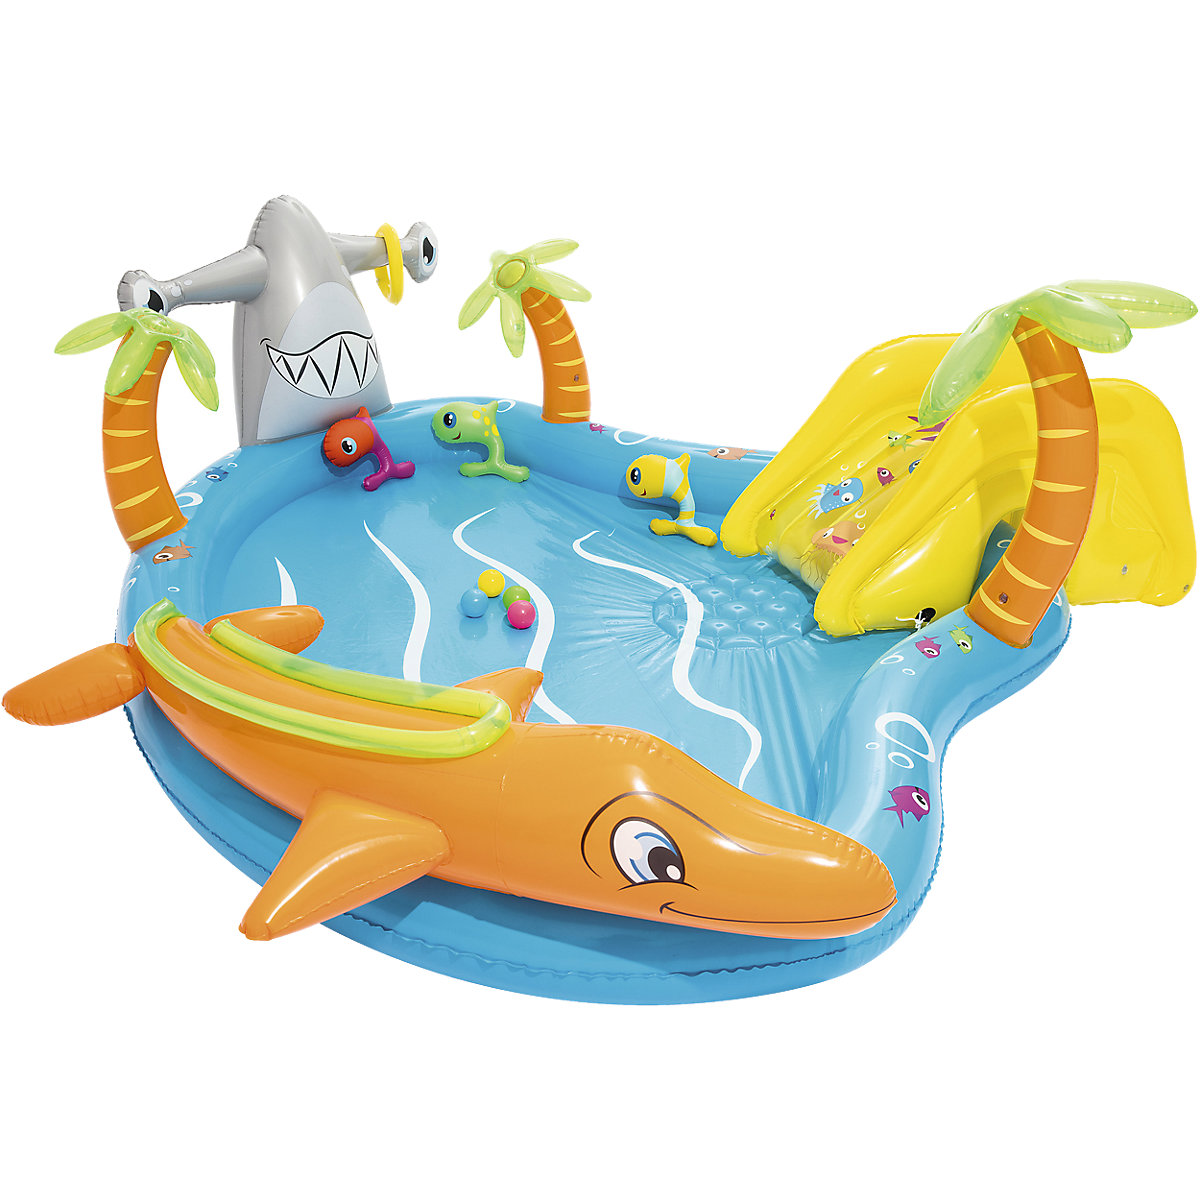 BESTWAY Swimming Pool 7196287 Inflatable Pools Accessories Activity & Gear Tub Kids Baby For Children